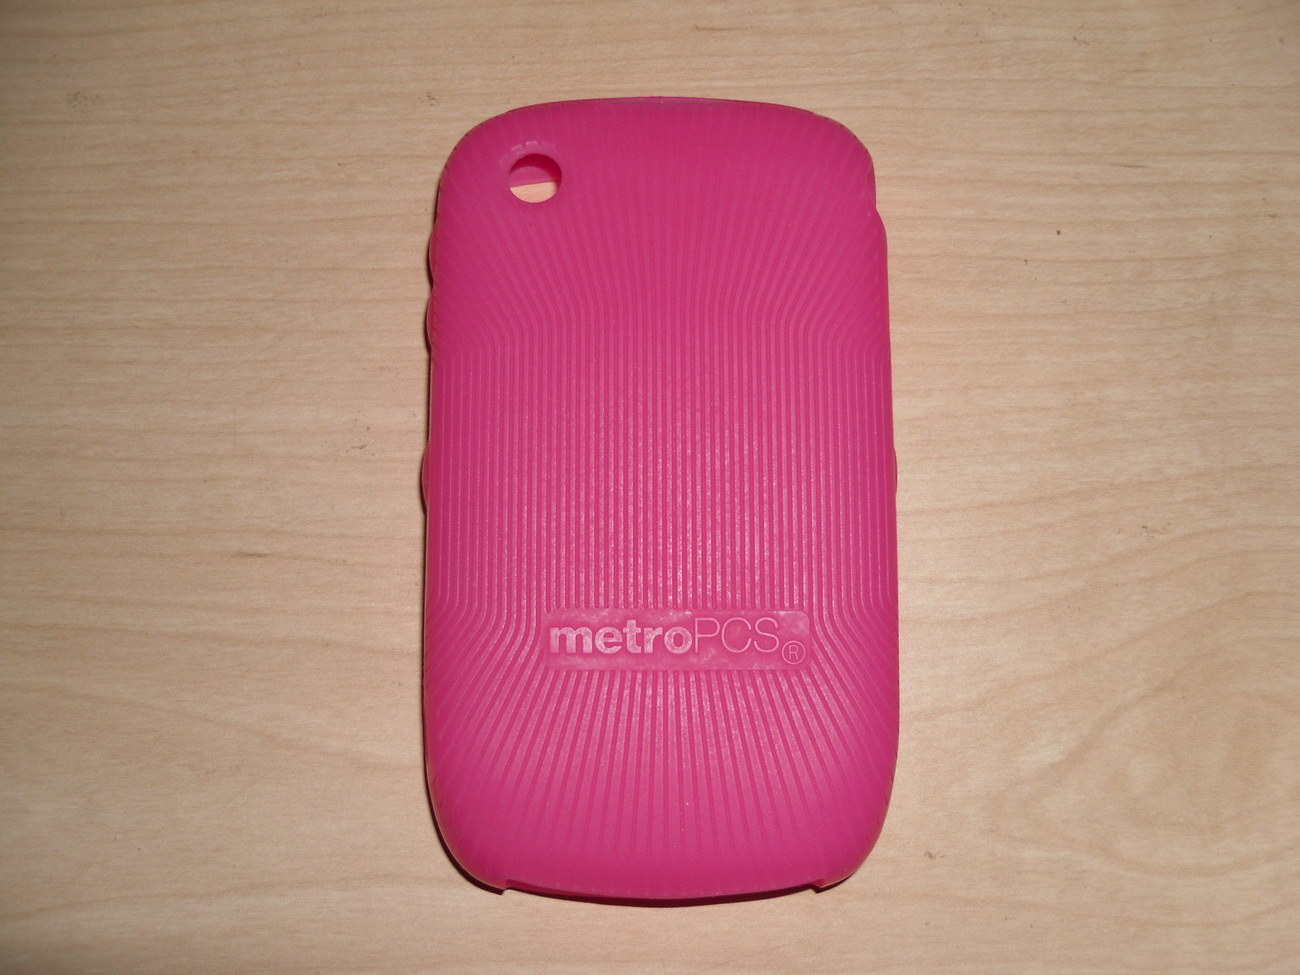 Blackberry_pink_sponge_case_back